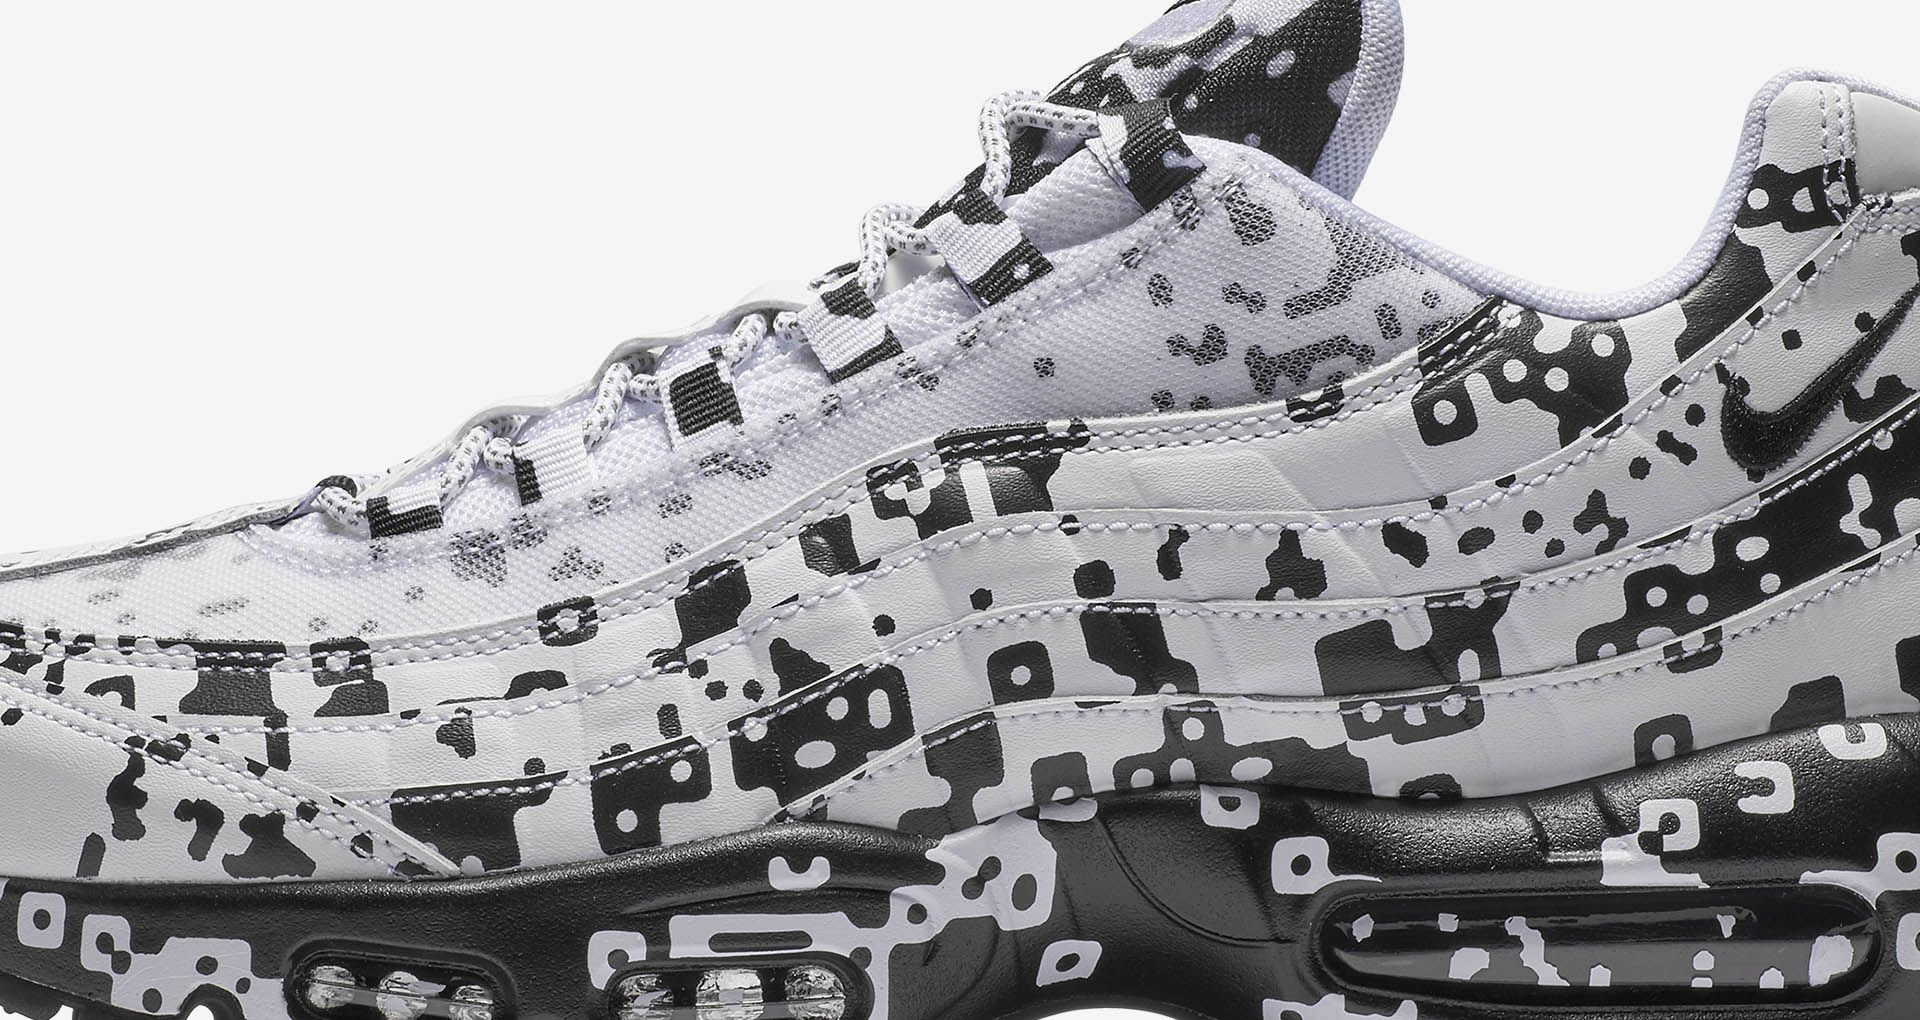 cheaper 9d3a1 ded3c Nike Air Max 95 Cav Empt 'White' Release Date. Nike+ SNKRS